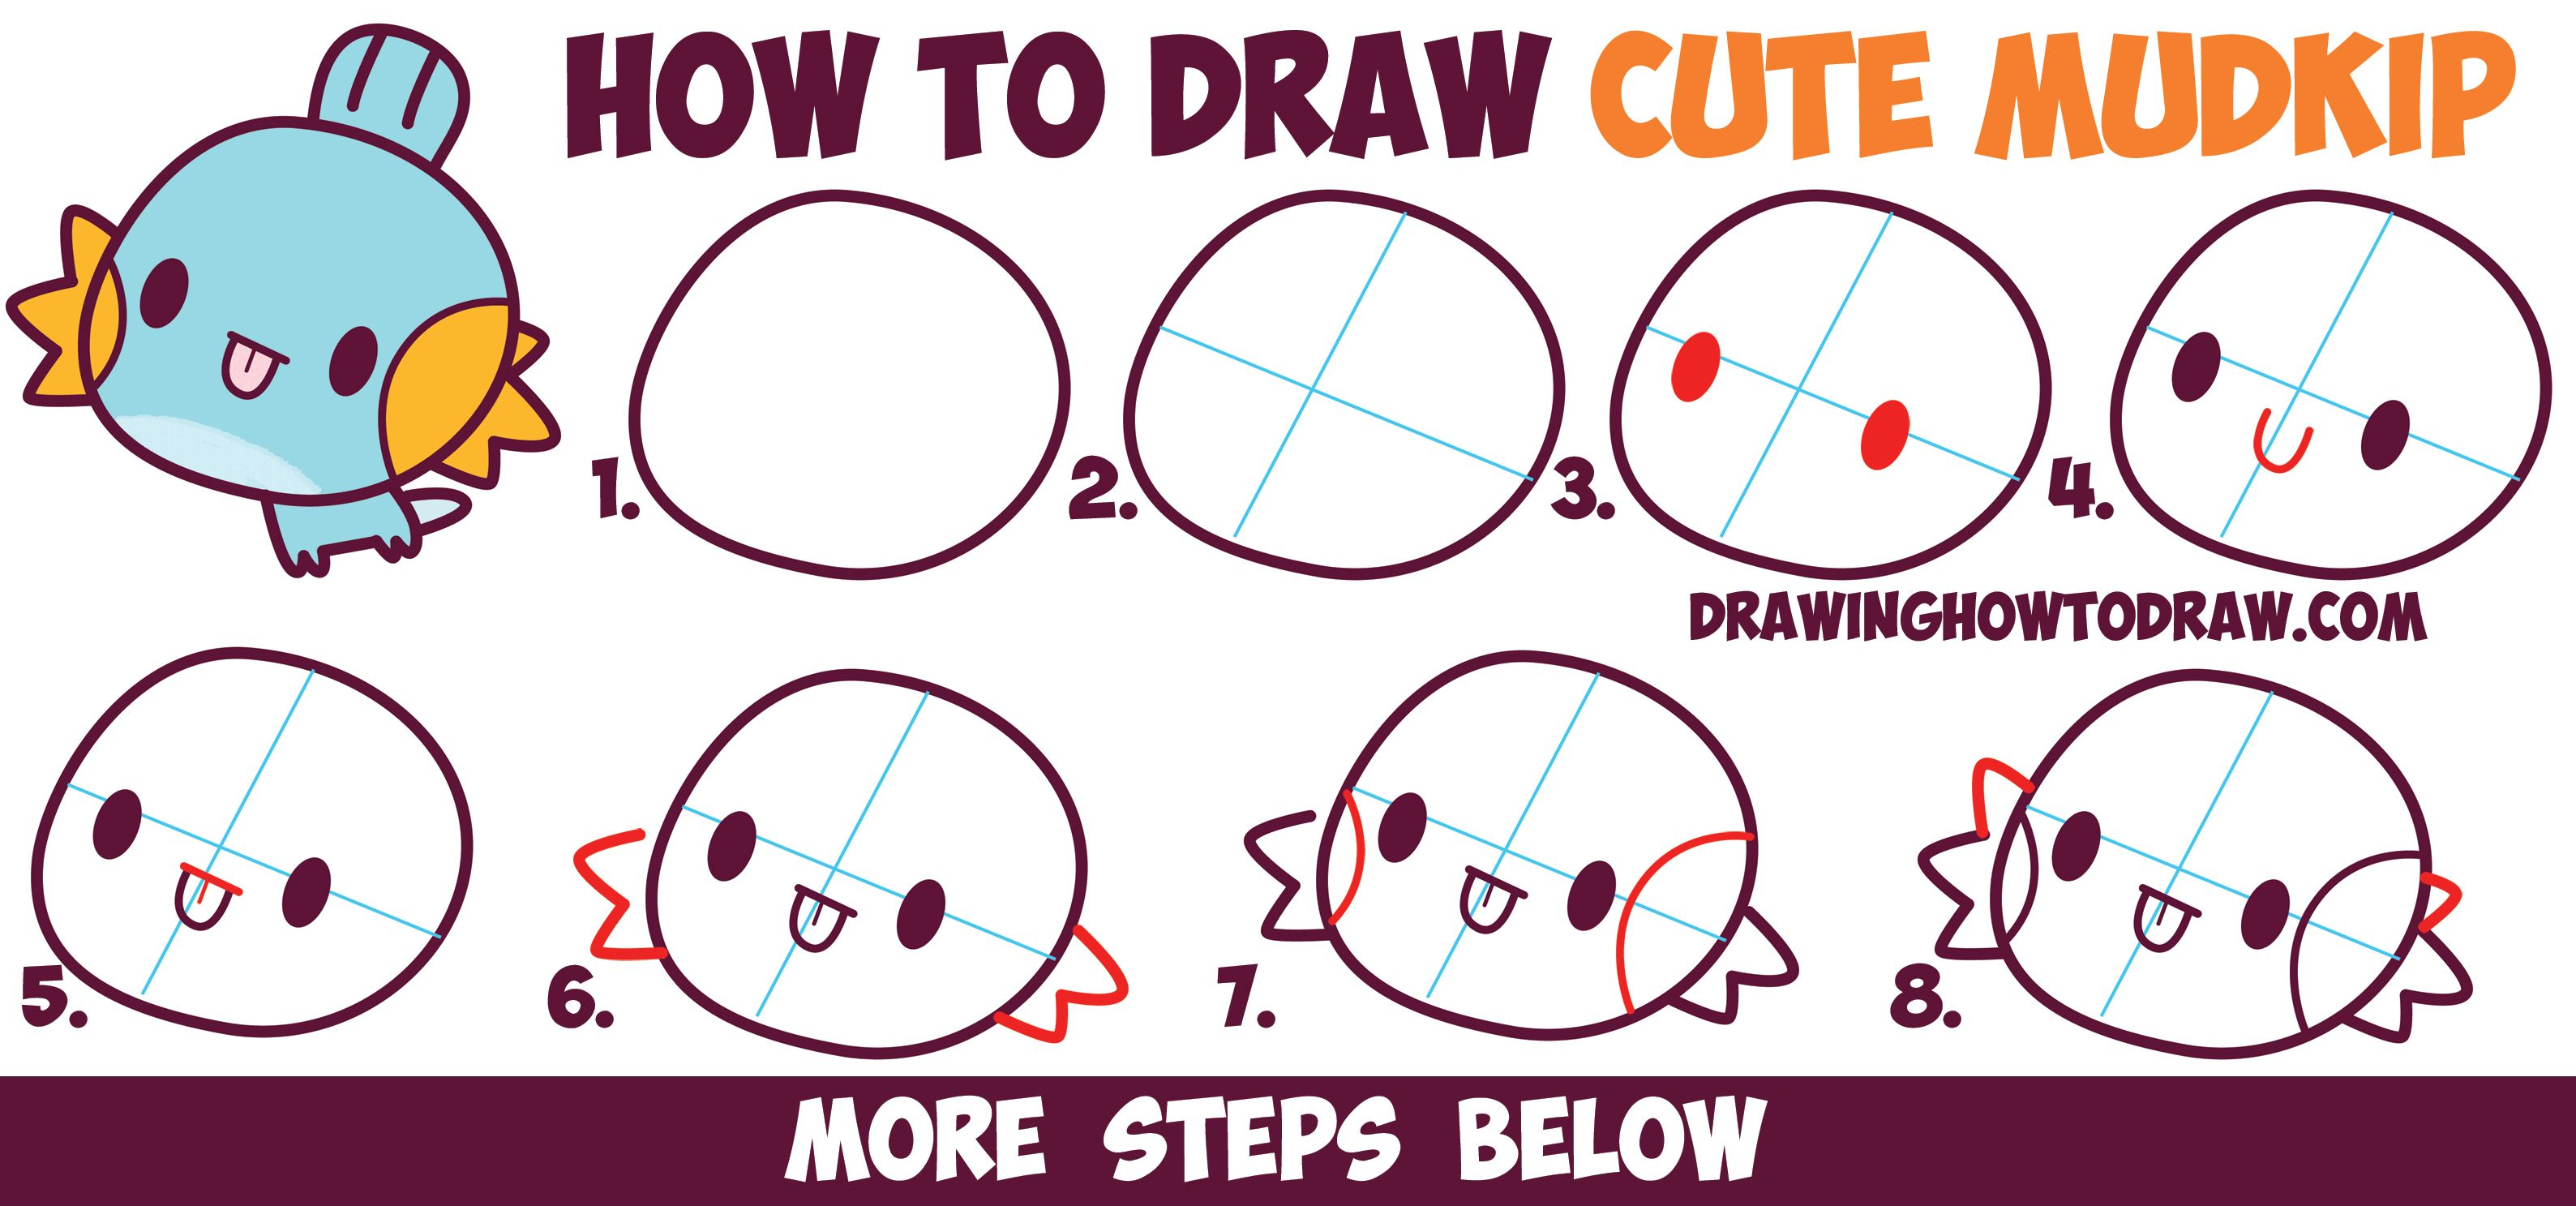 How To Draw MudKip From Pokemon Cute Chibi Kawaii Easy Step By Drawing Tutorial For Kids